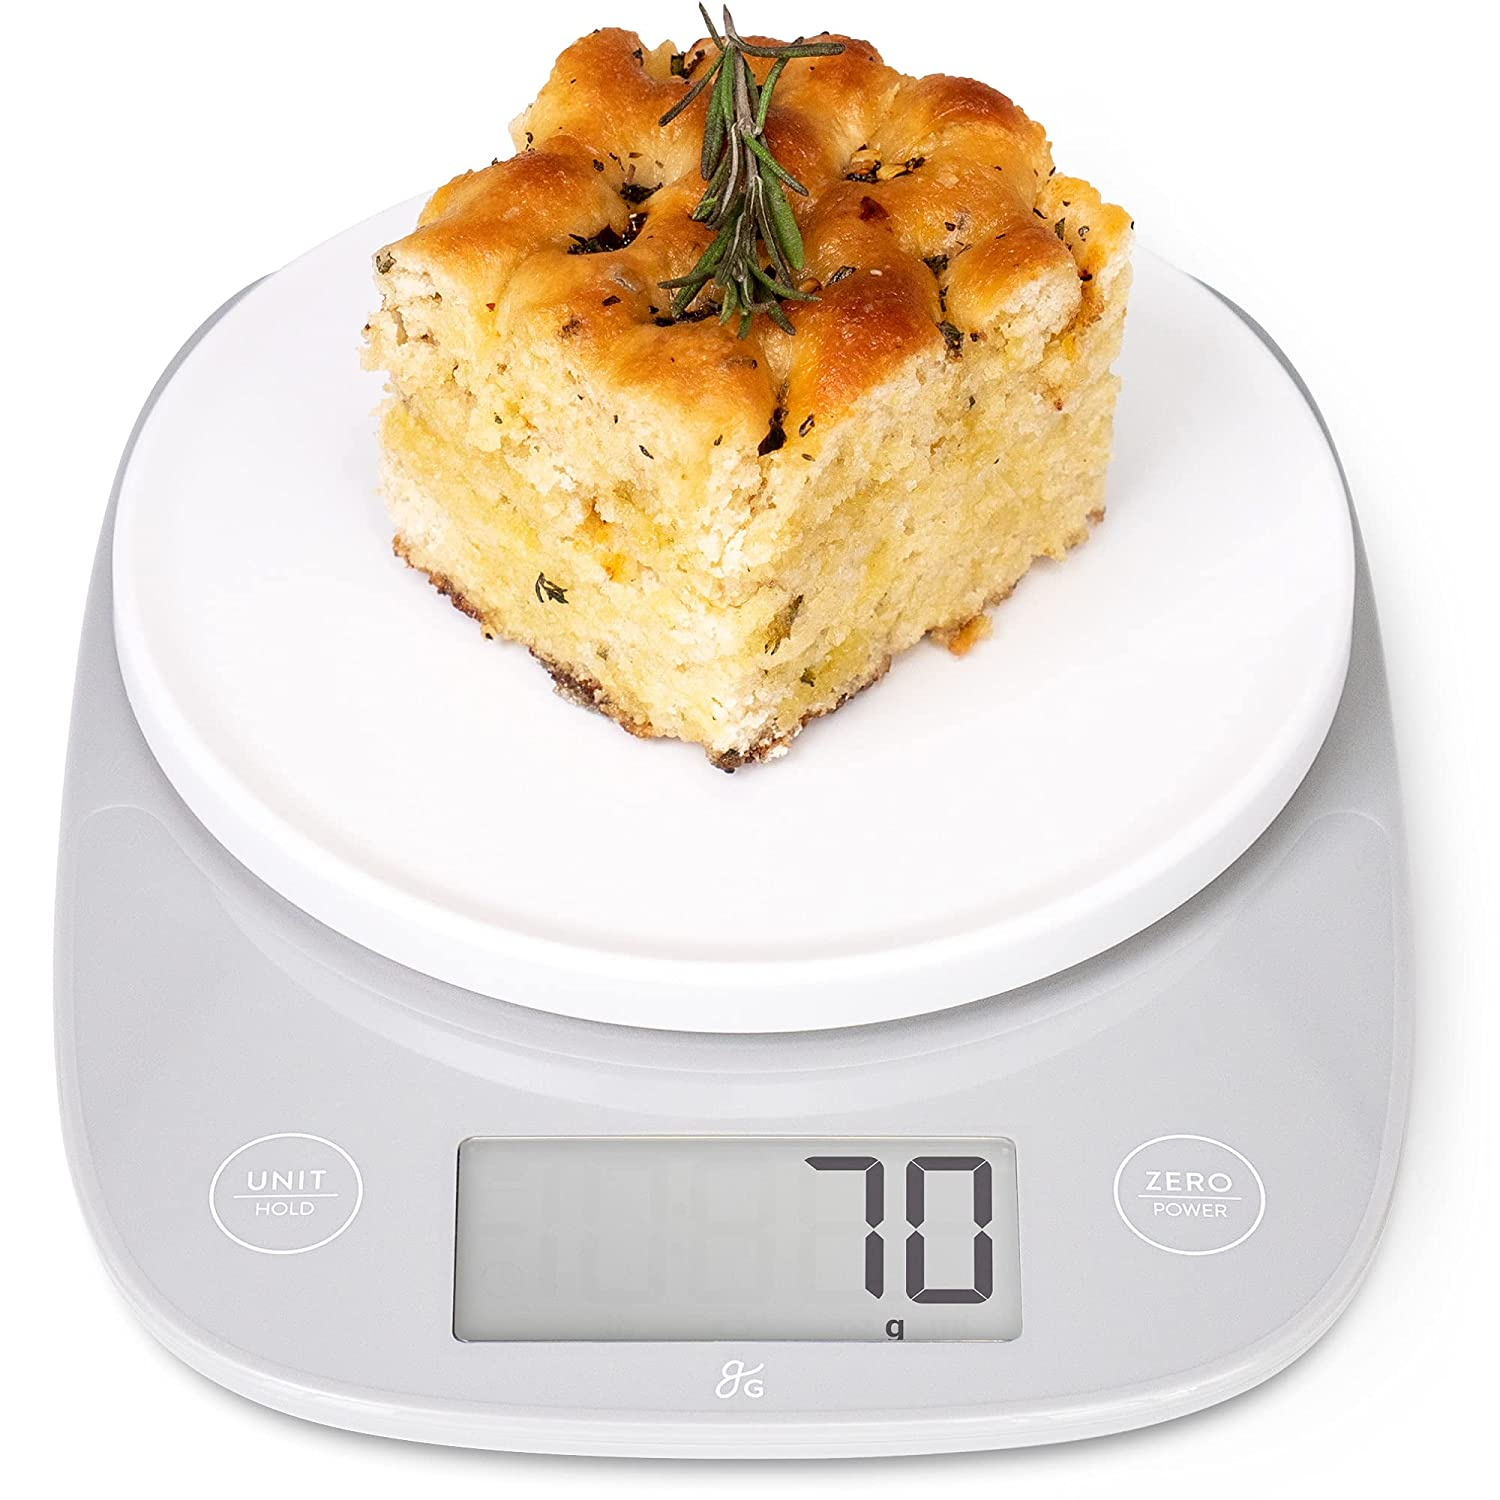 Greater Goods Kitchen Table Top Scale | Our Ultra Accurate Model, Perfect for Weighing Food and Coffee, for Nutrition and Meal Prep | Measures in Grams, Ounces, Milliliters, and Pounds